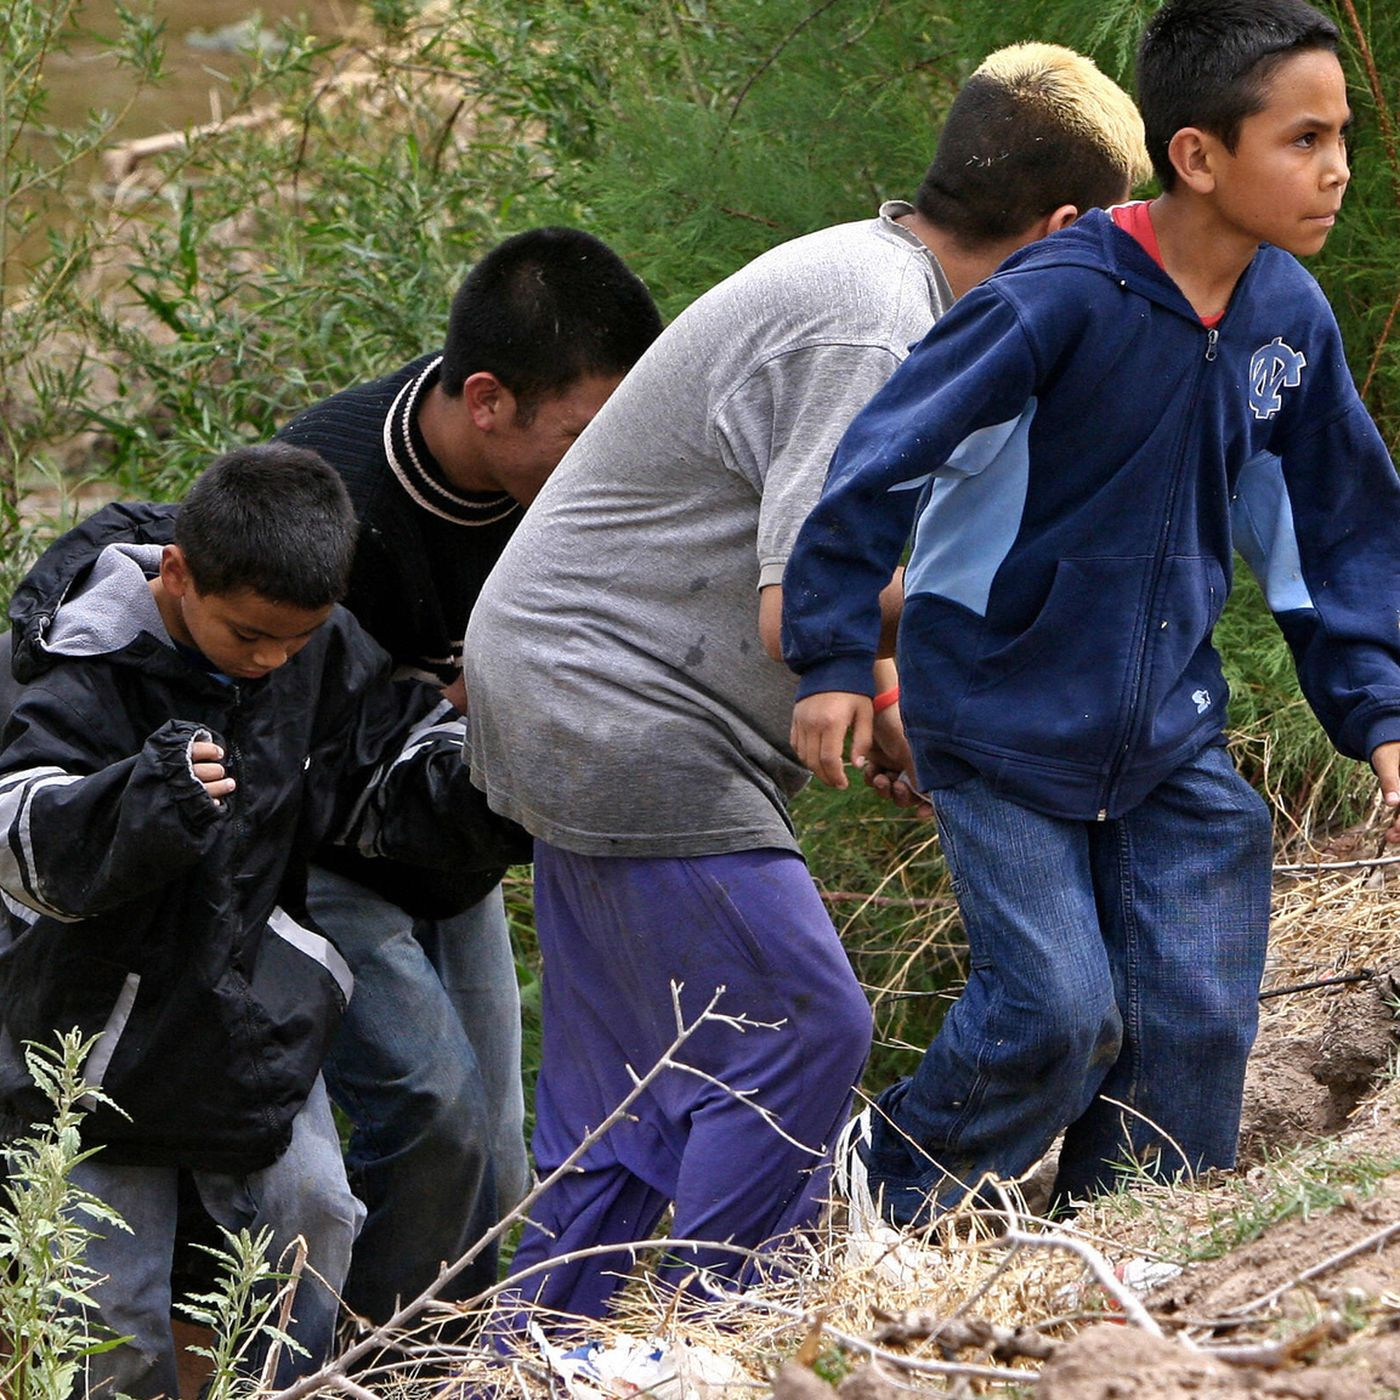 Study Most Kids Still Arent Screened >> 14 Facts That Help Explain America S Child Migrant Crisis Vox